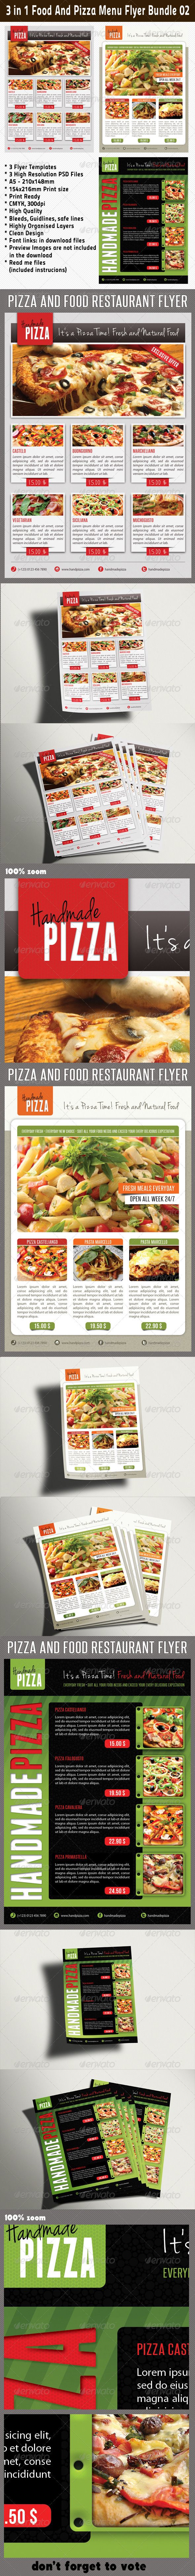 GraphicRiver 3 in 1 Food And Pizza Menu Flyer Bundle 02 6274120